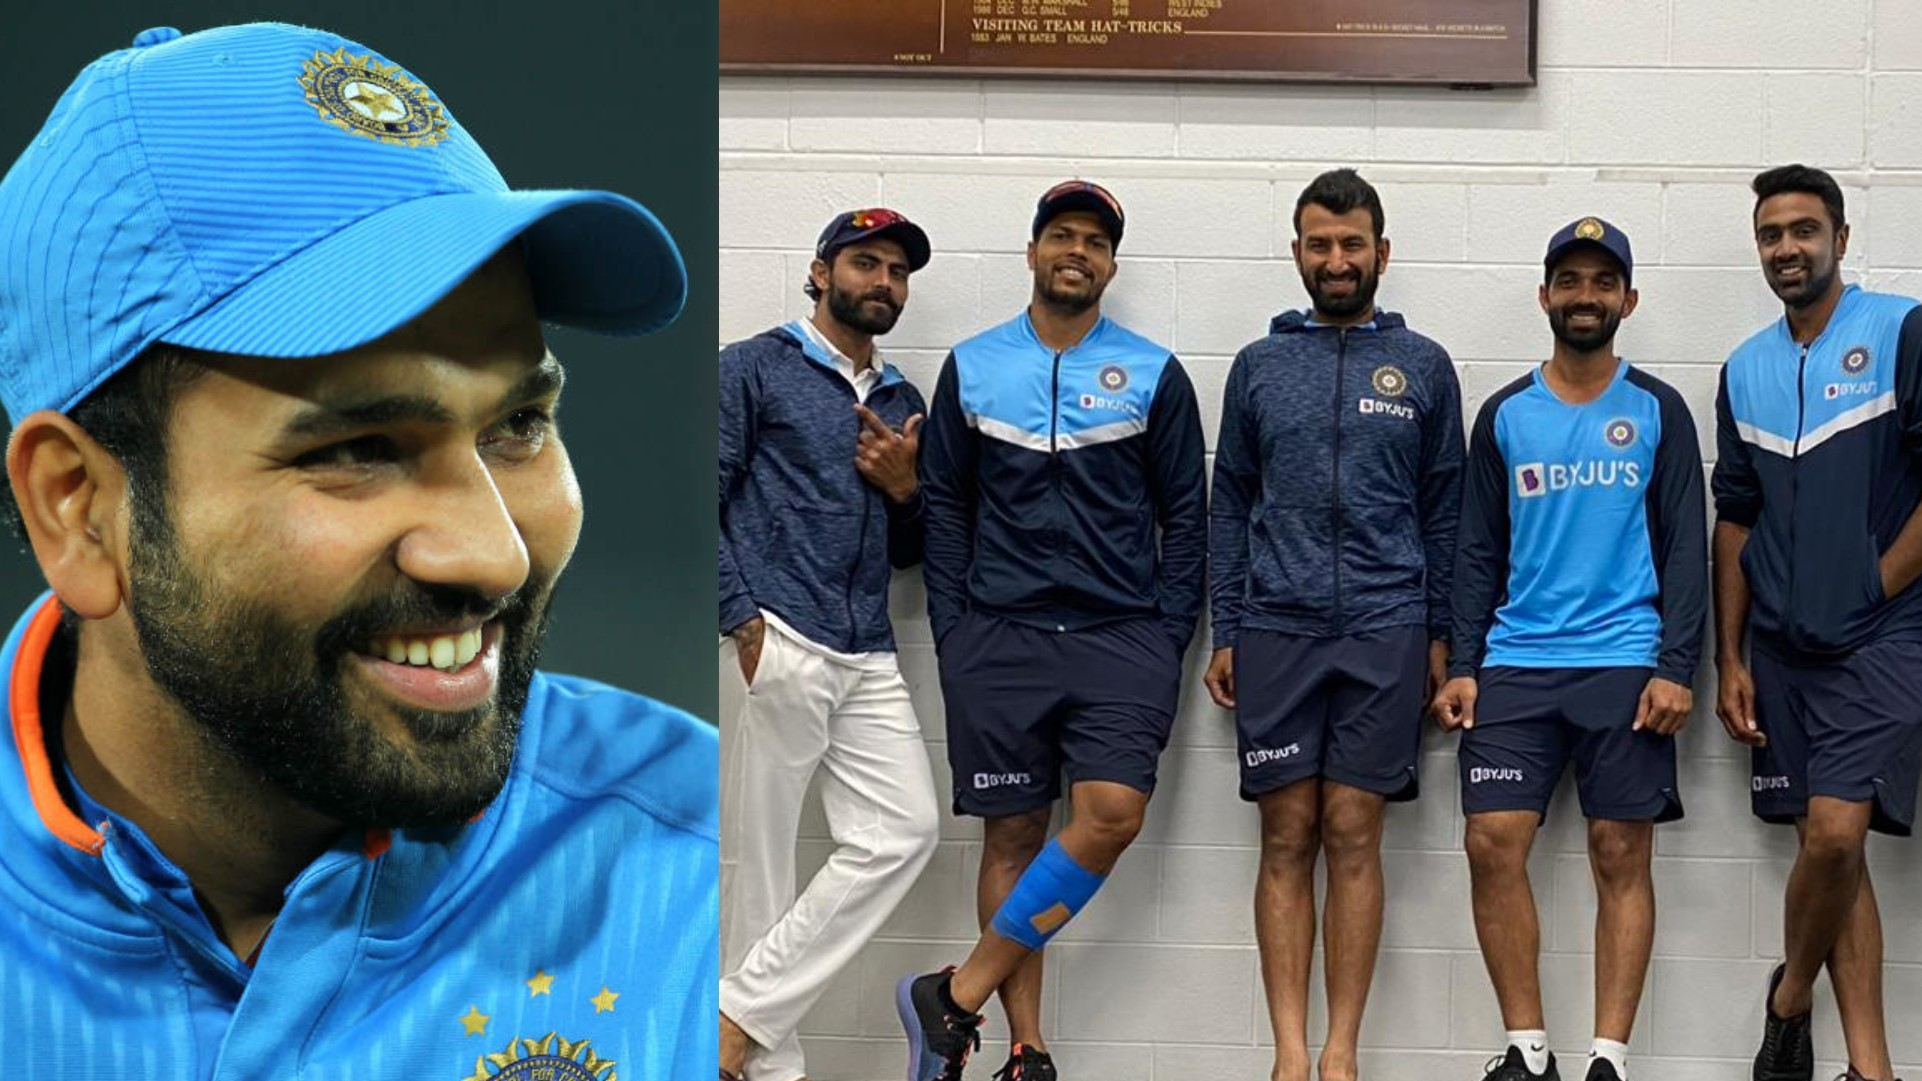 AUS v IND 2020-21: Ashwin and Rohit banter over Pujara's 'attention' pose in group photo